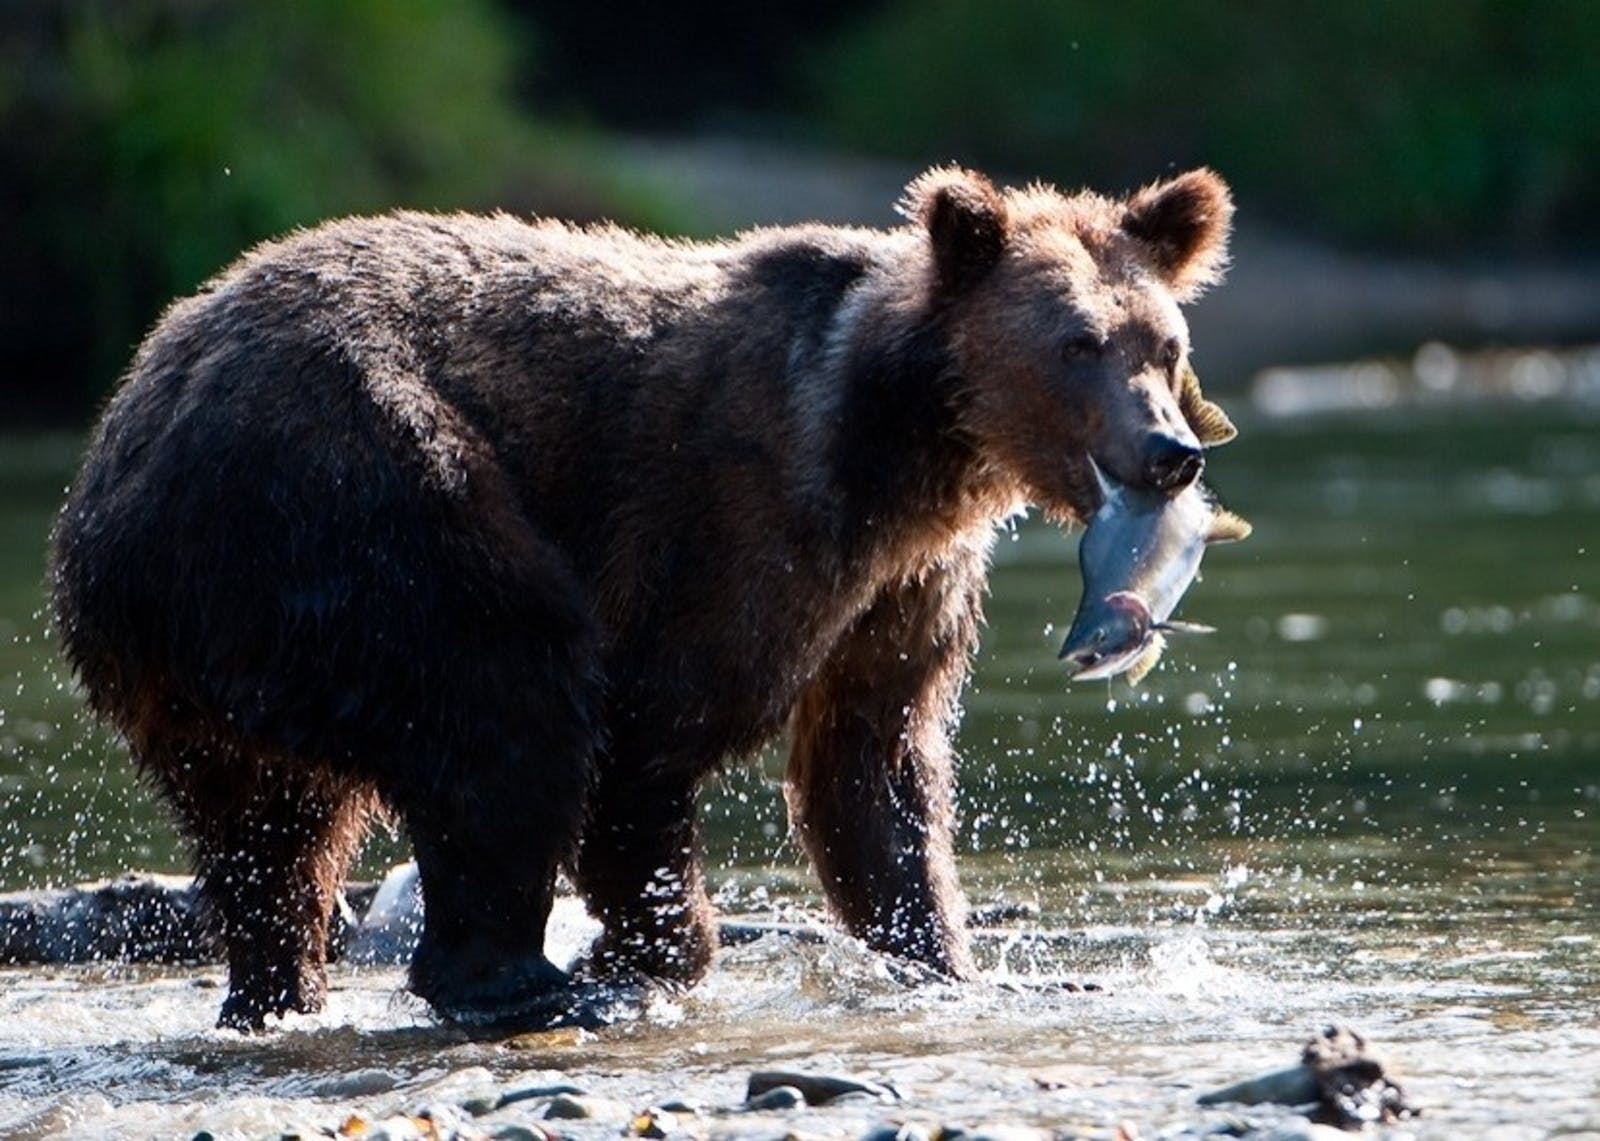 grizzly with fish - photo by nick garbutt